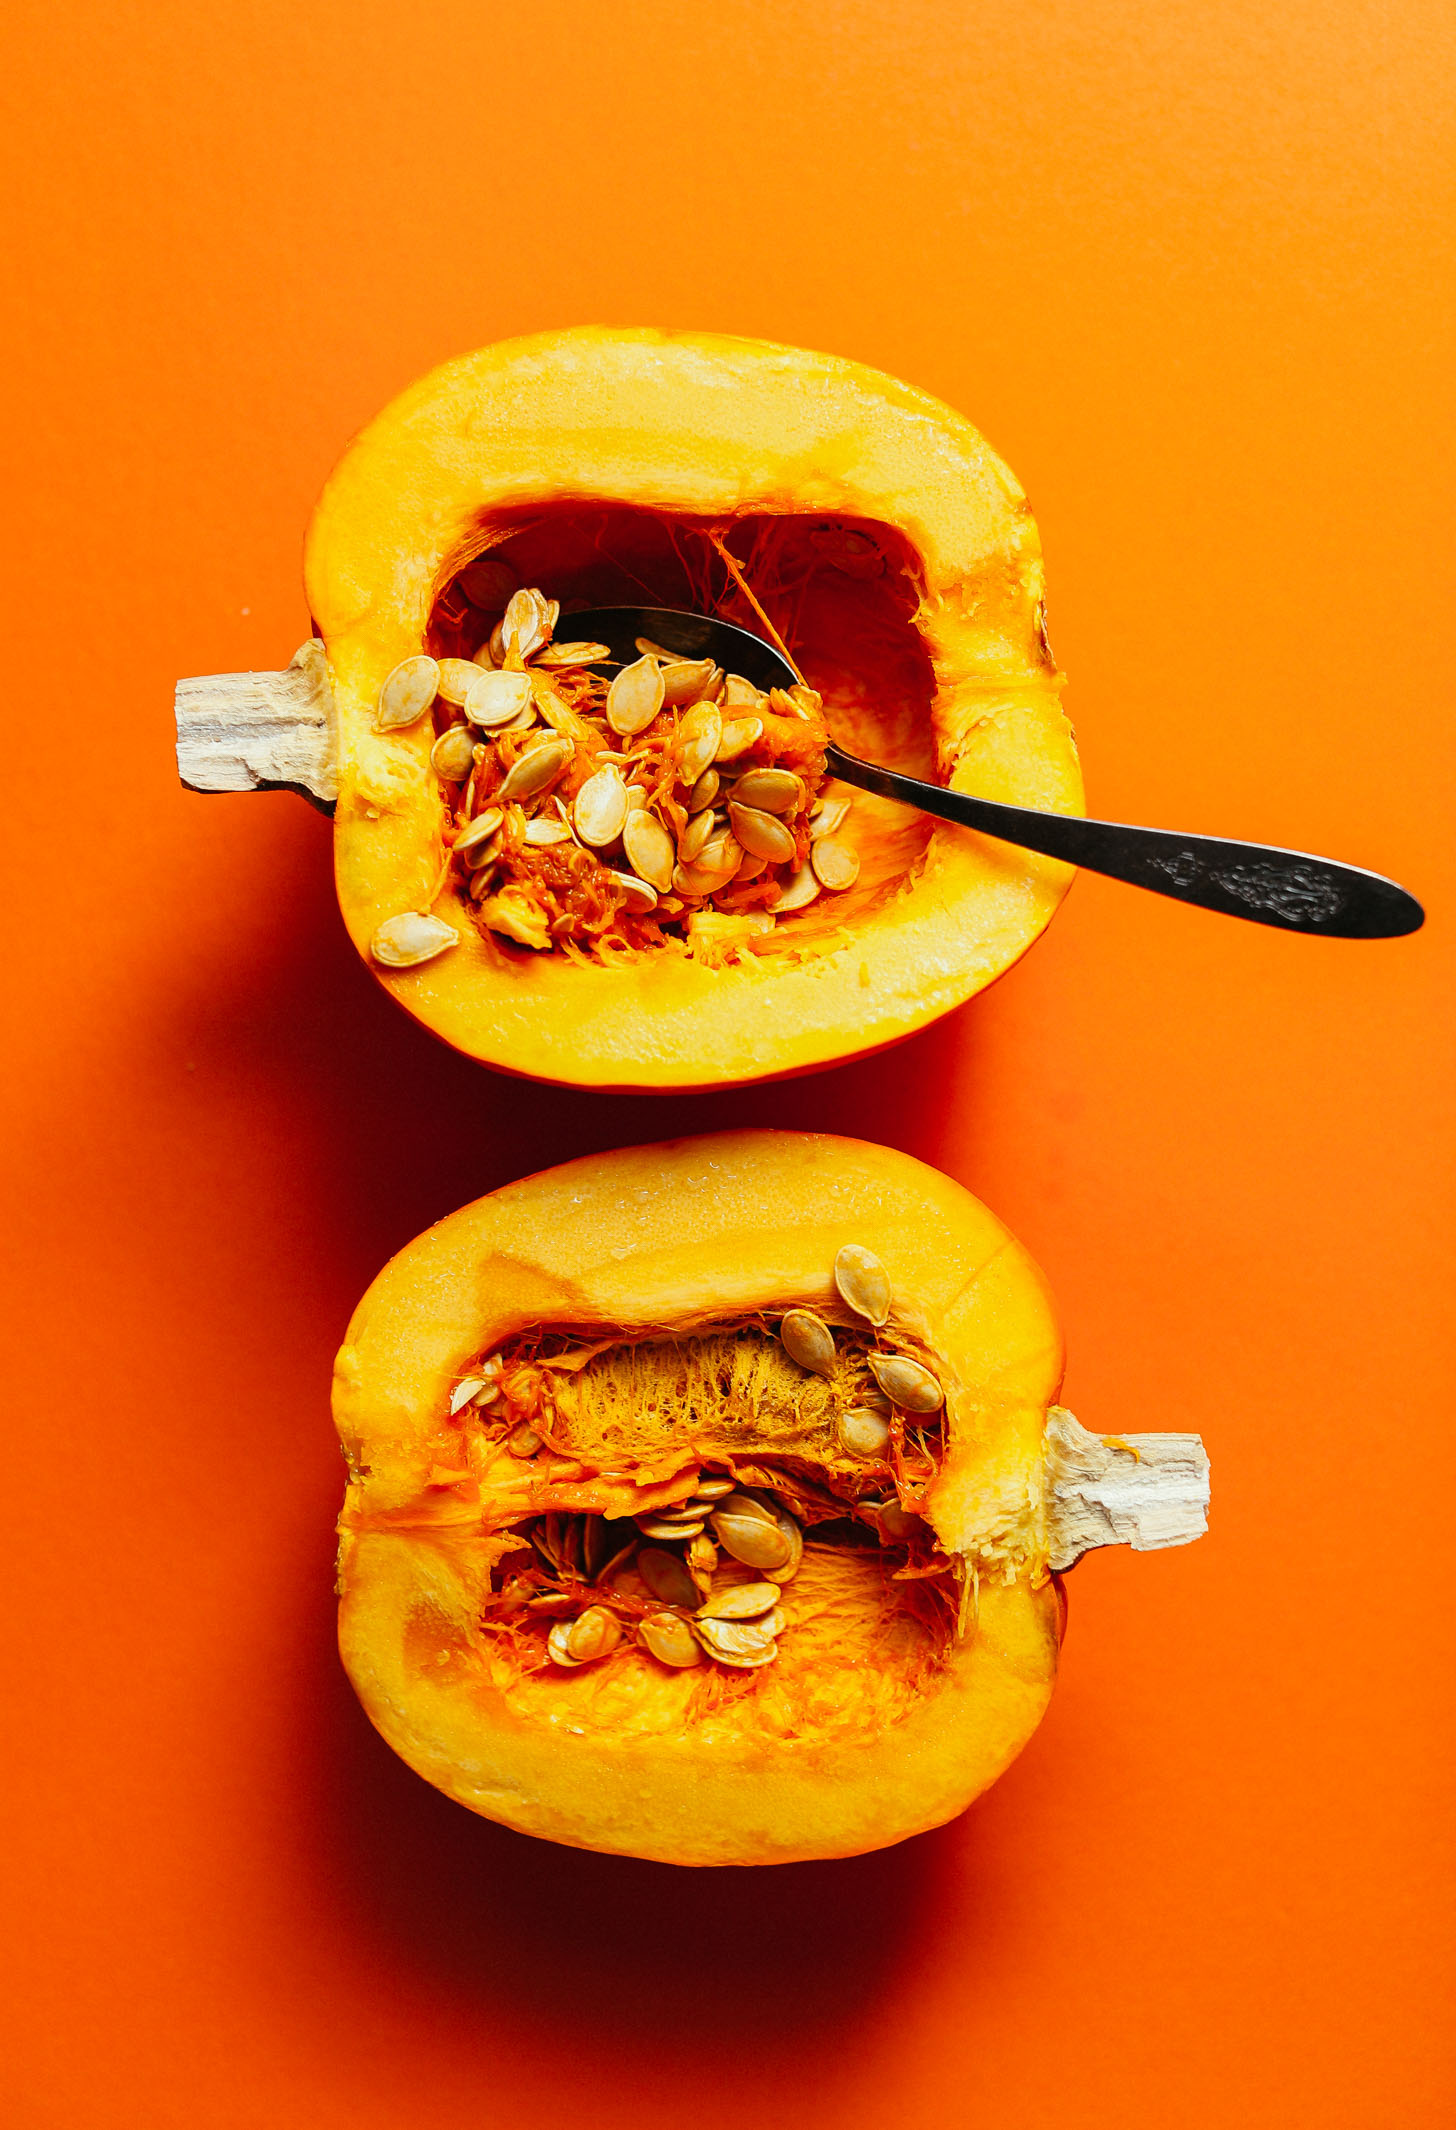 Scooping out the seeds and flesh from a halved pumpkin